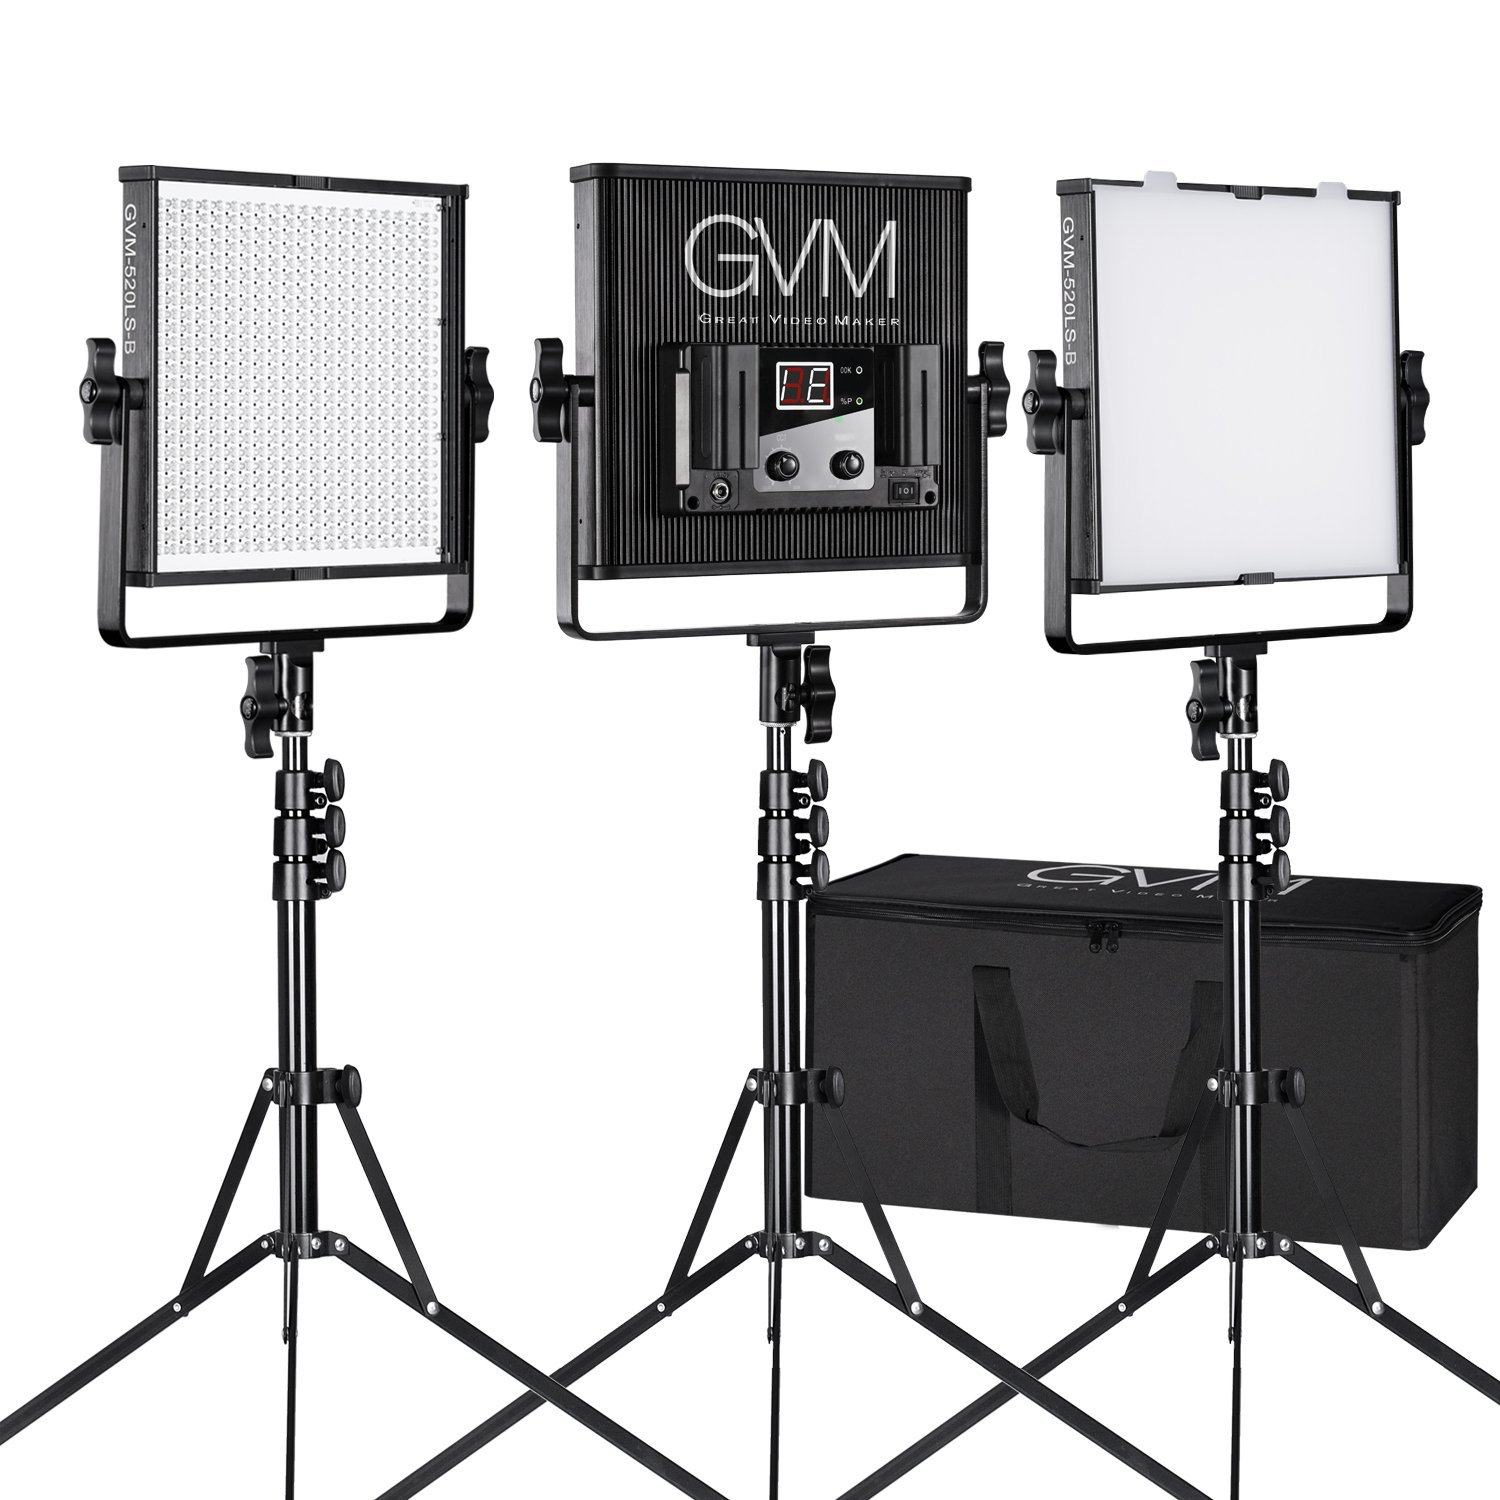 LED Video Light GVM 520LS CRI97+ TLCI97+ 18500lux Dimmable Bi-color 3200K-5600K Light For Outdoor Interview Studio Portrait Photographic 3 pcs Kit